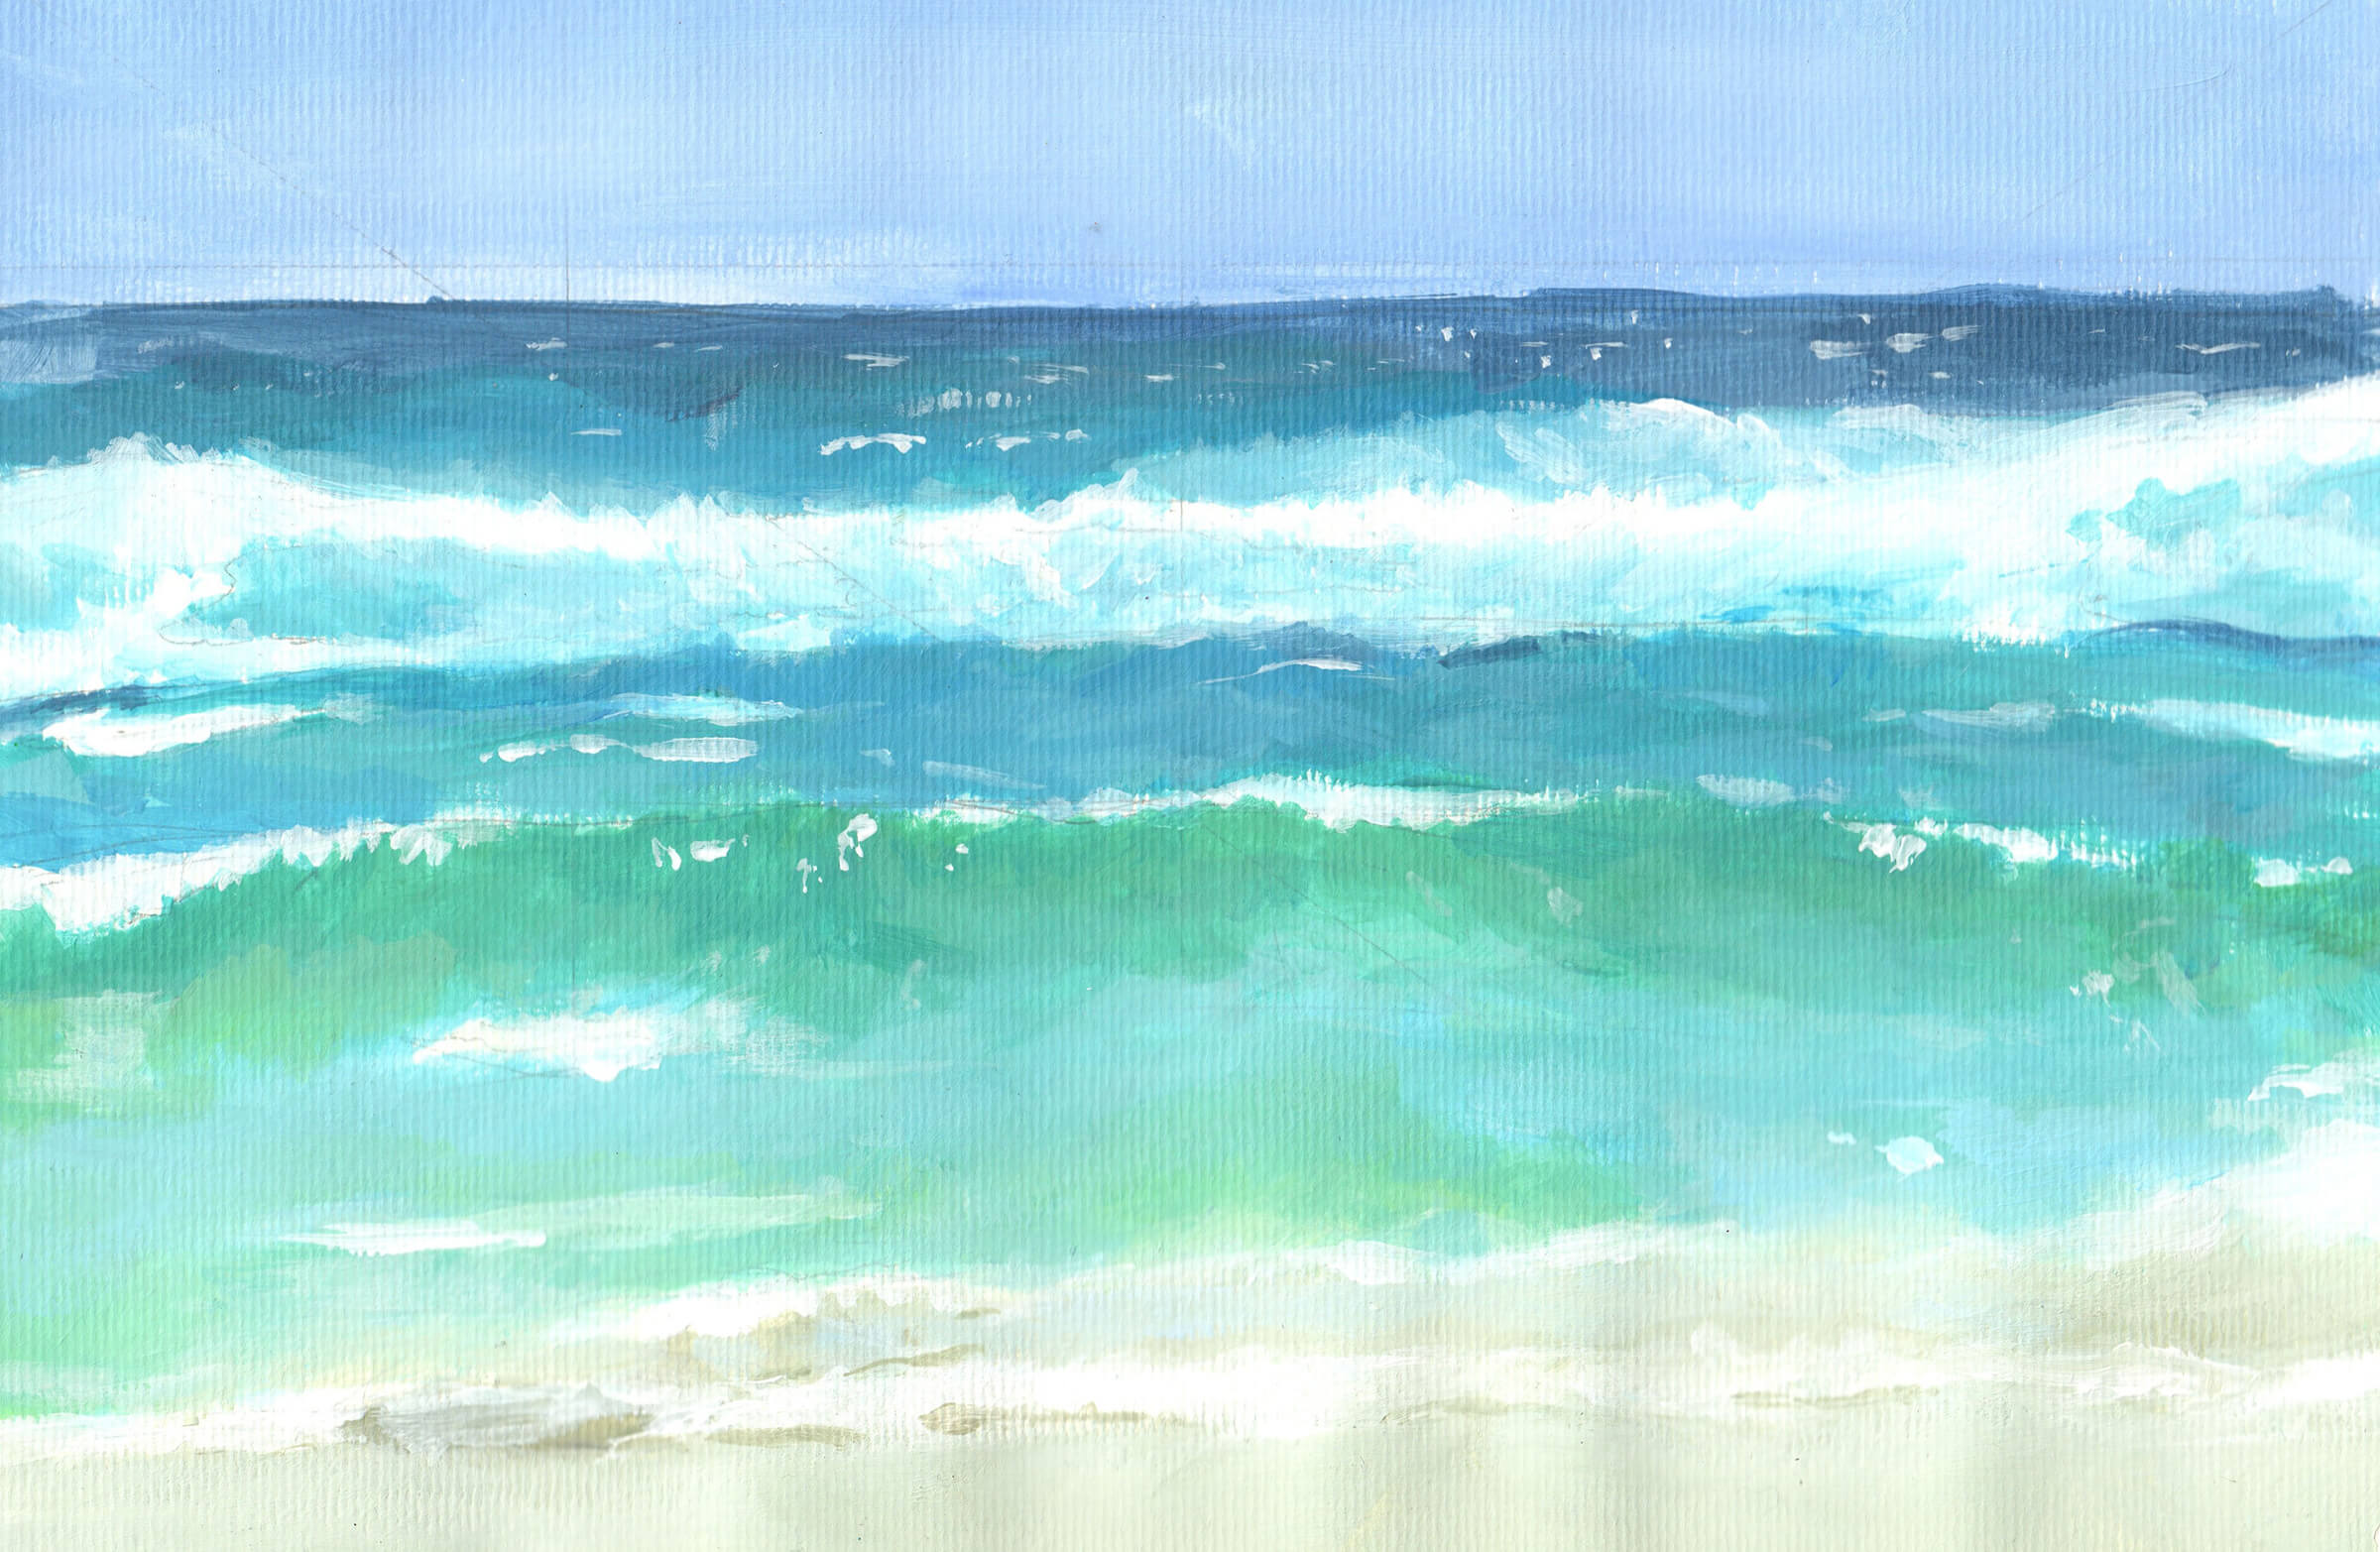 Landscape painting of waves cresting toward the viewer on a sandy beach. Hues of blue get darker the further out one looks.